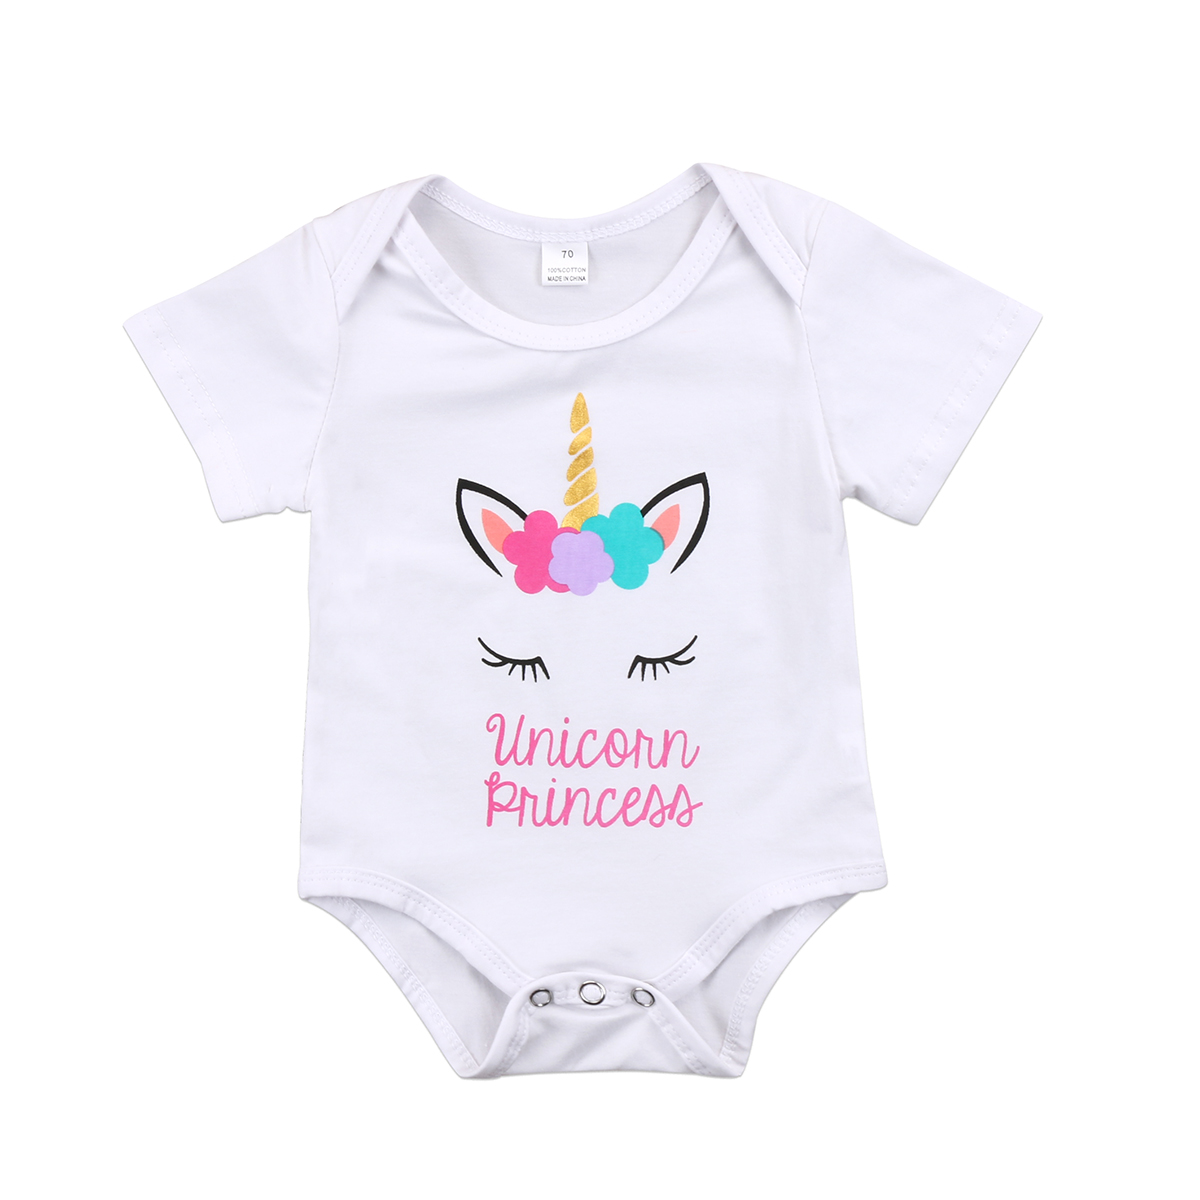 Cartoon Unicorn baby girls clothes Cotton Newborn Baby Girls short sleeves   Romper   Body suit Summer Jumpsuit birthday costume